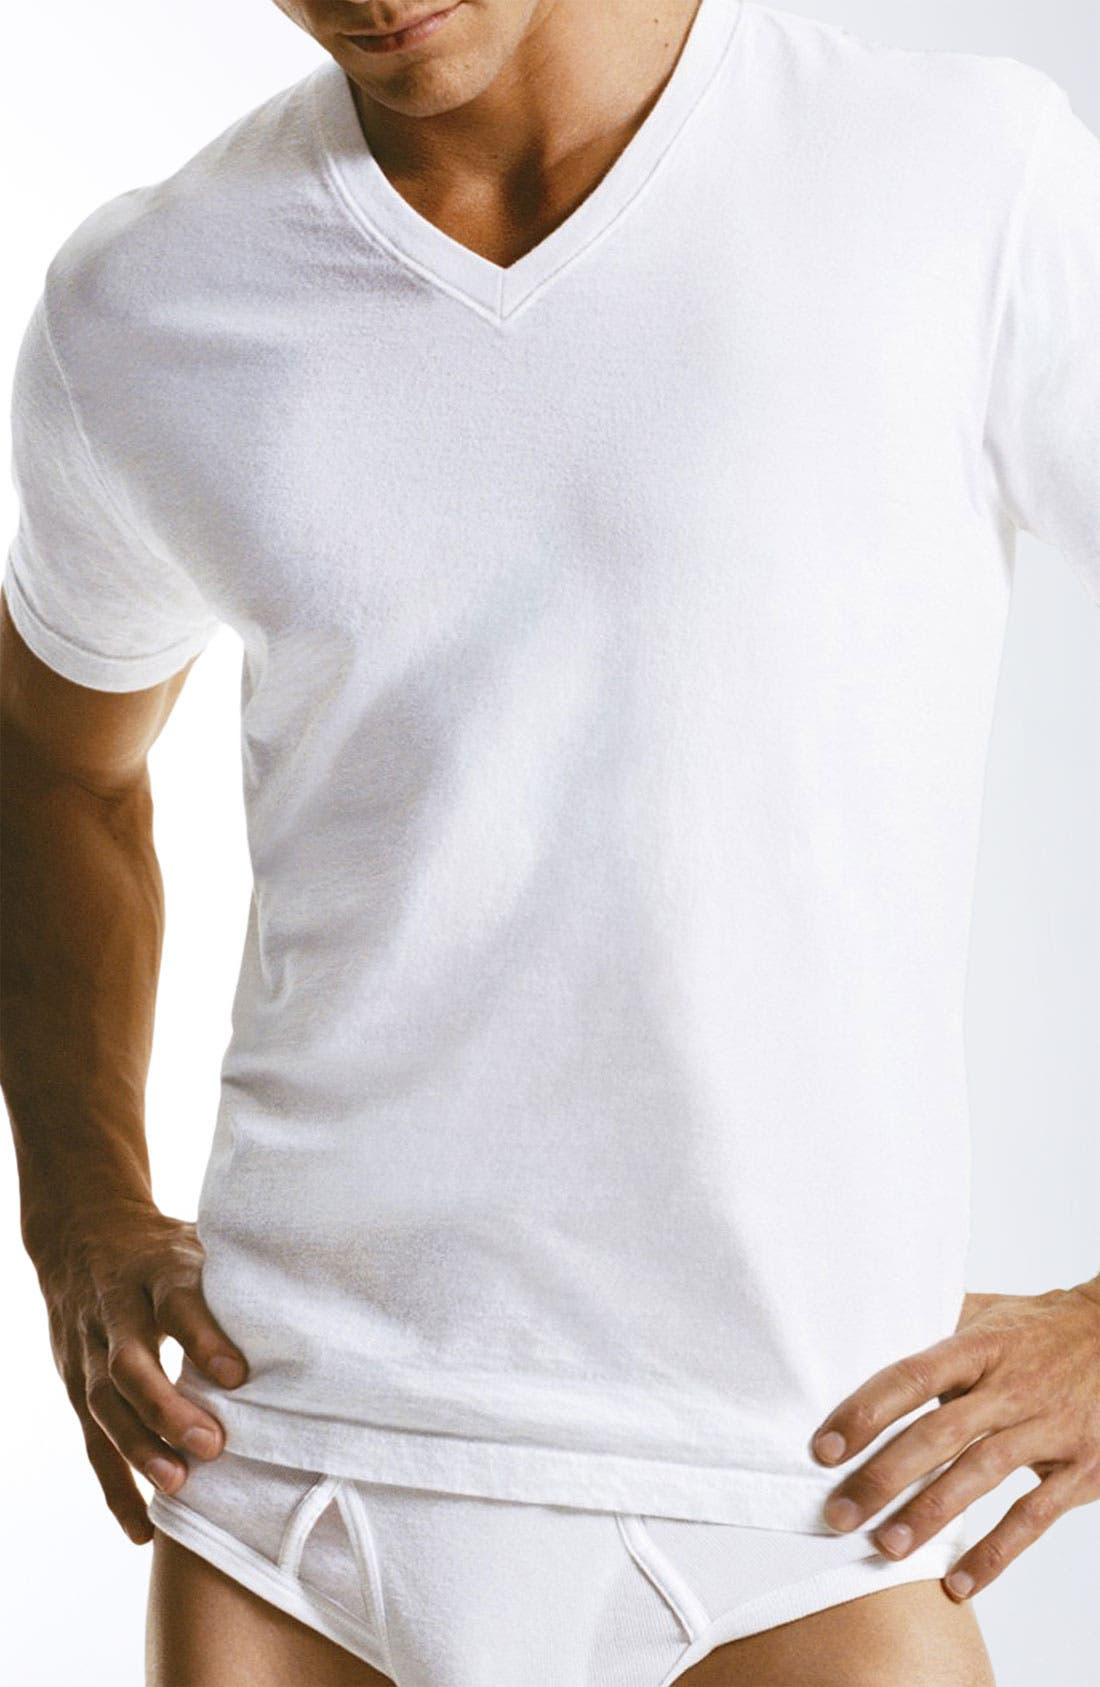 Alternate Image 1 Selected - Calvin Klein 'M9065' Cotton V-Neck T-Shirt (3-Pack)